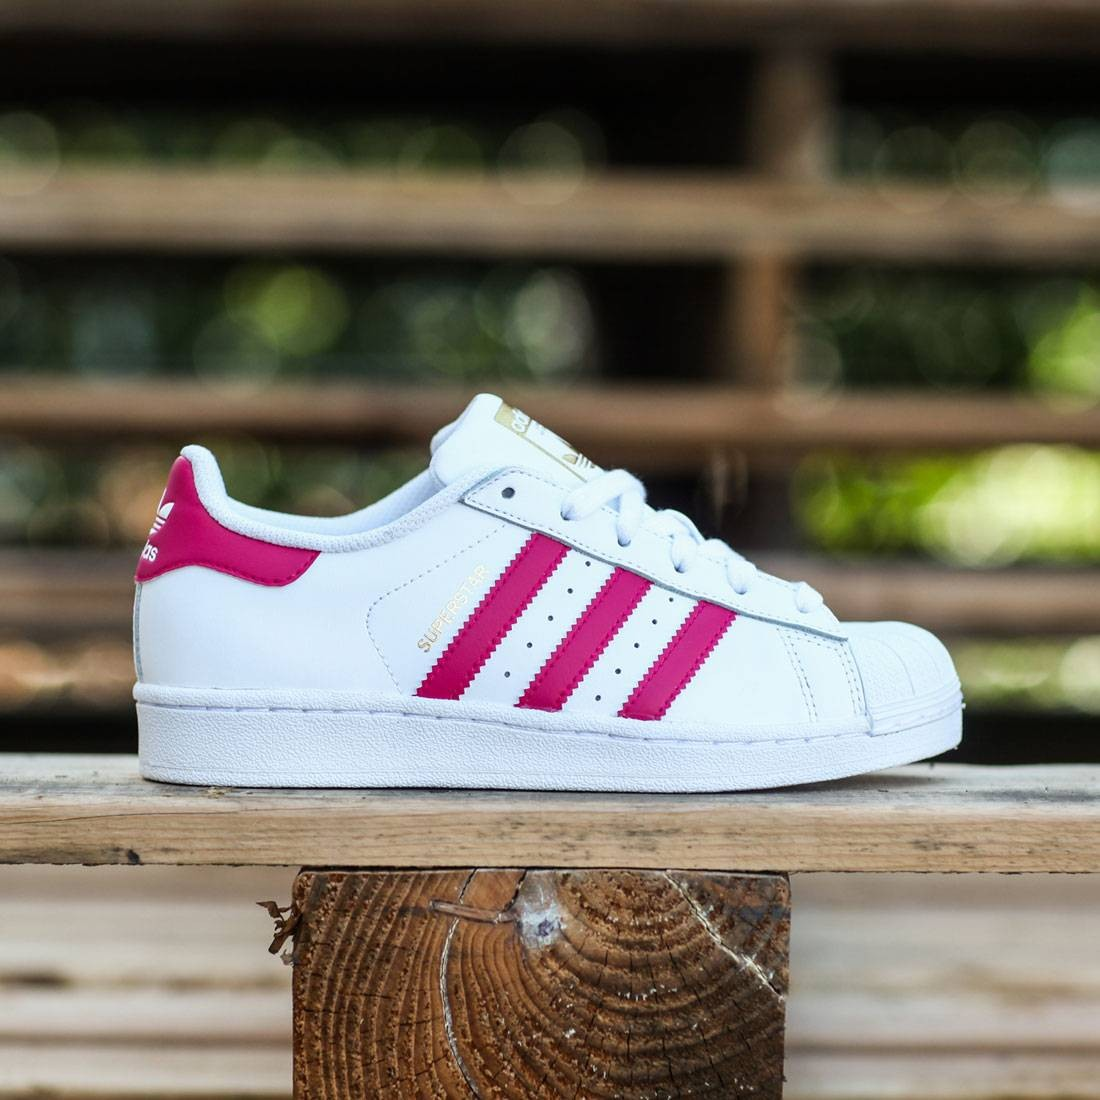 Adidas Foundation Adidas Foundation Superstar Adidas Kids Kids Superstar Superstar 4RqS7Axw